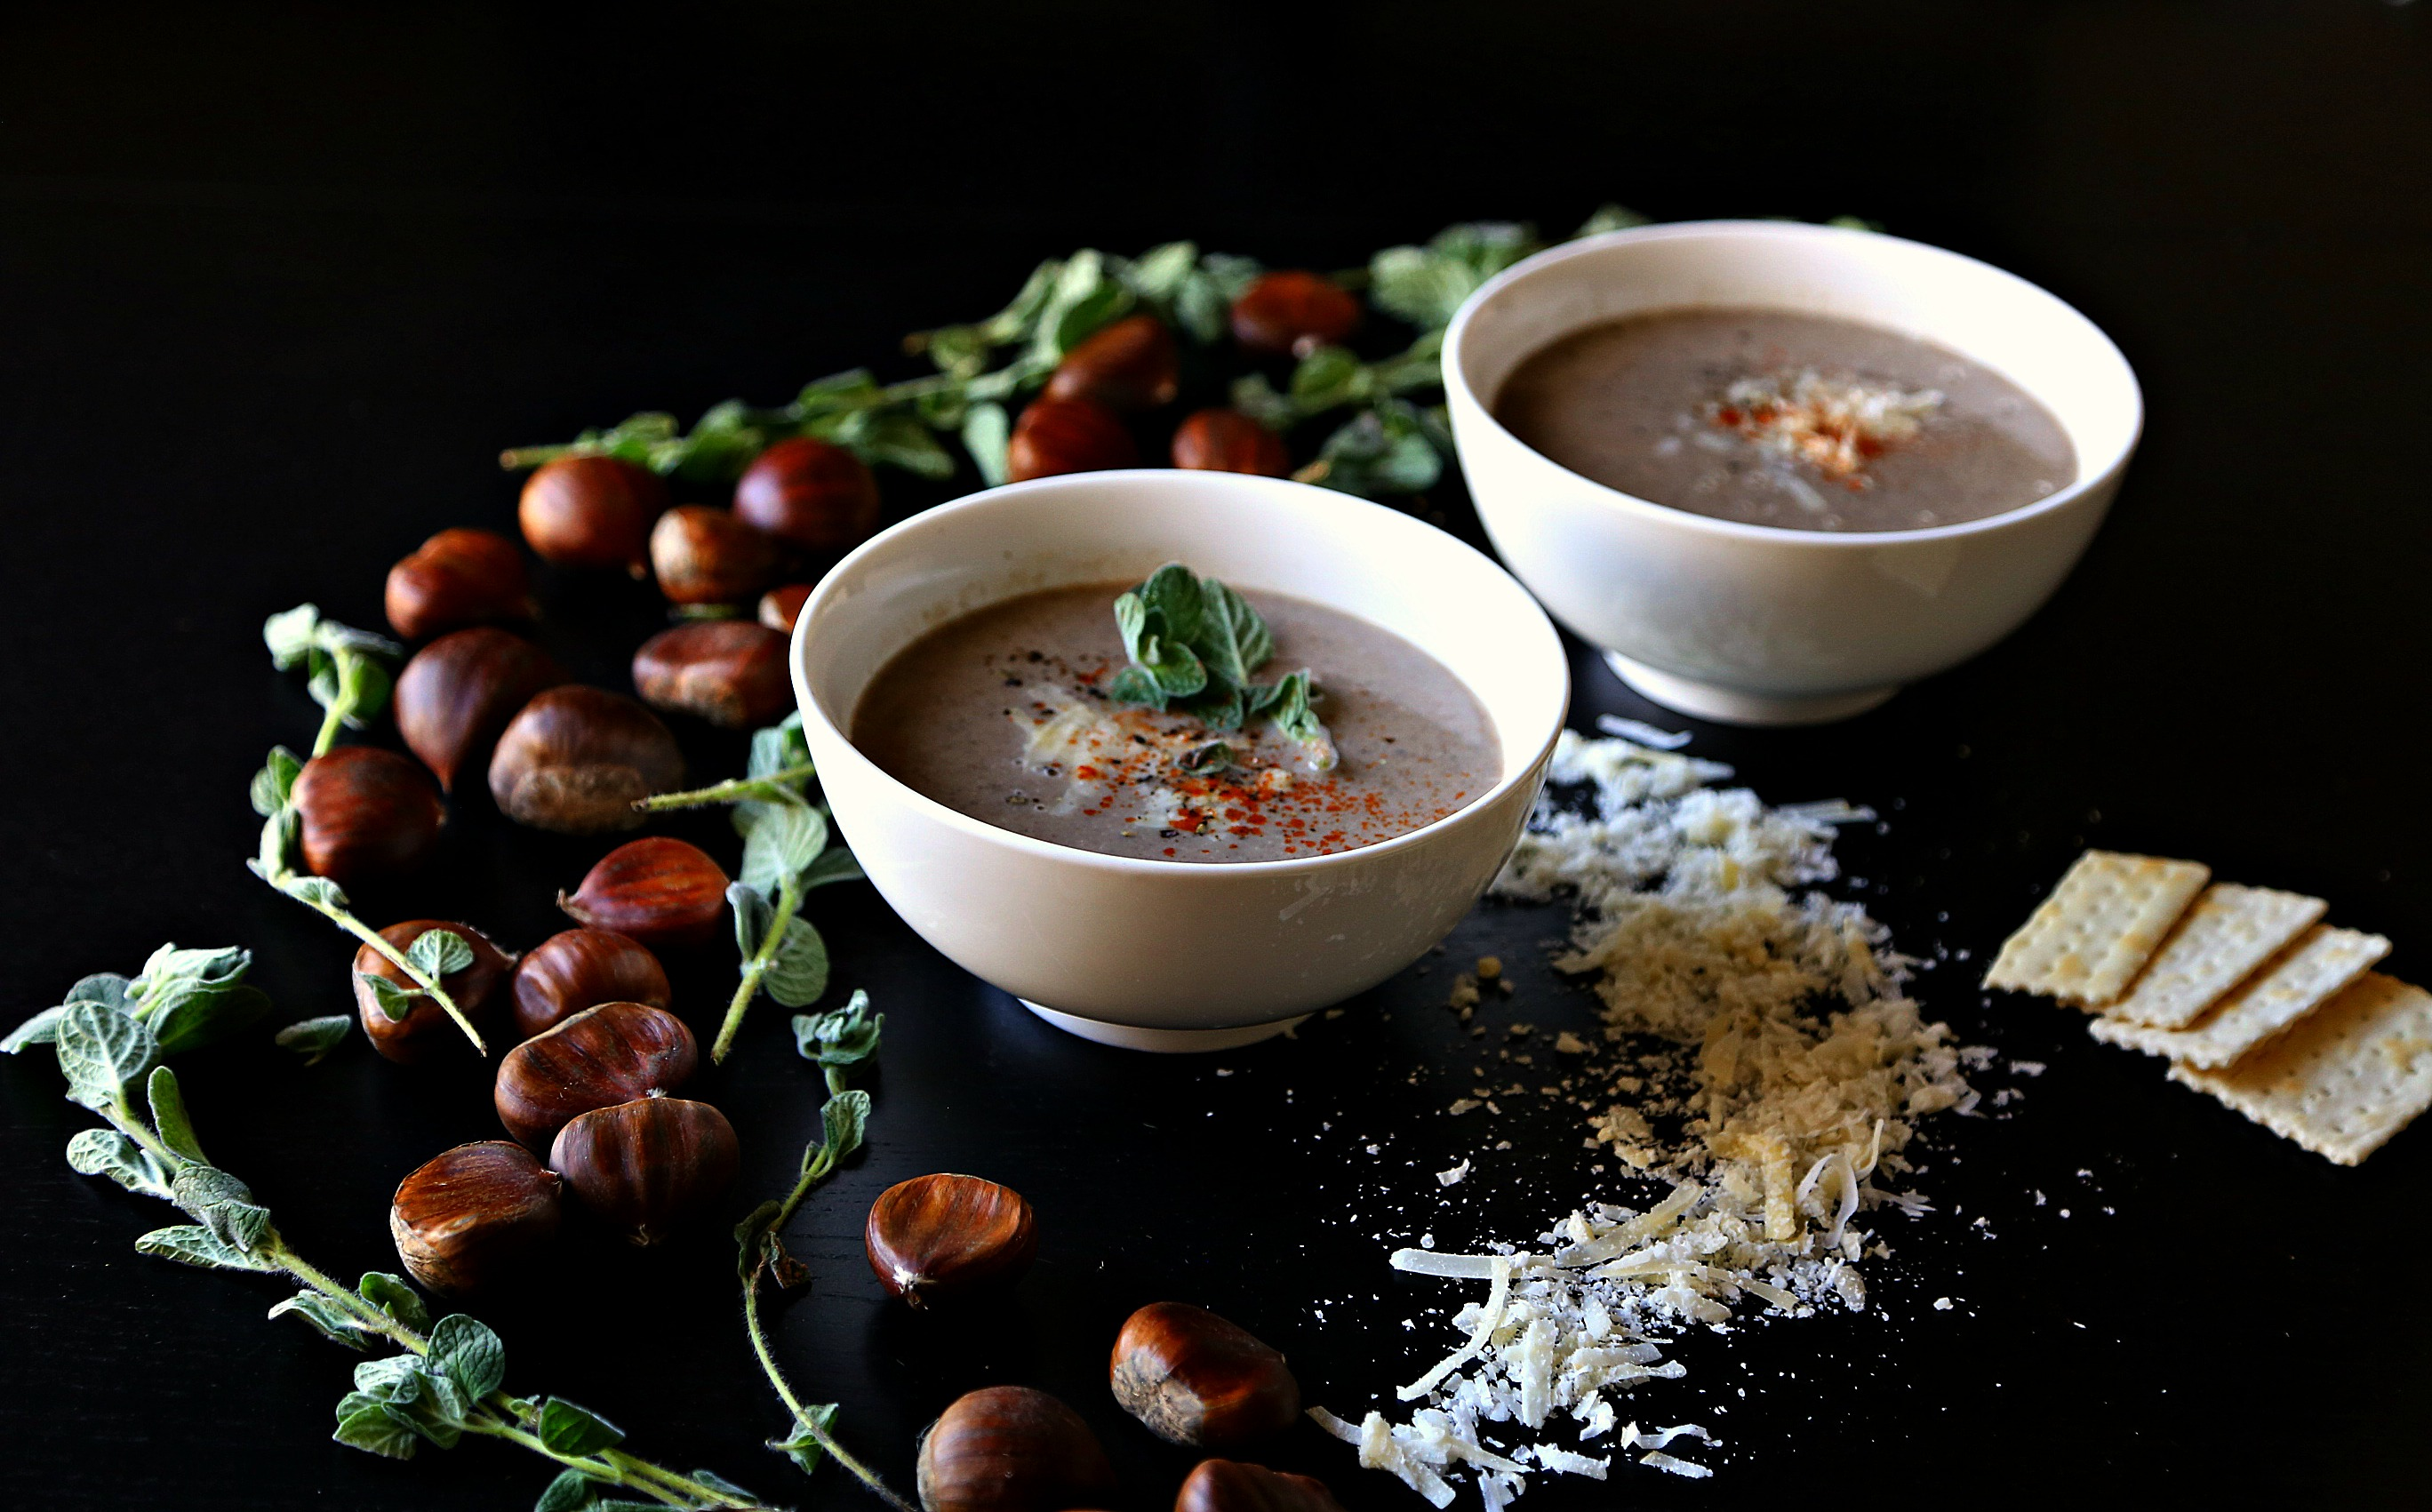 chestnut-soup-with-brie-and-thyme-all-2-edited